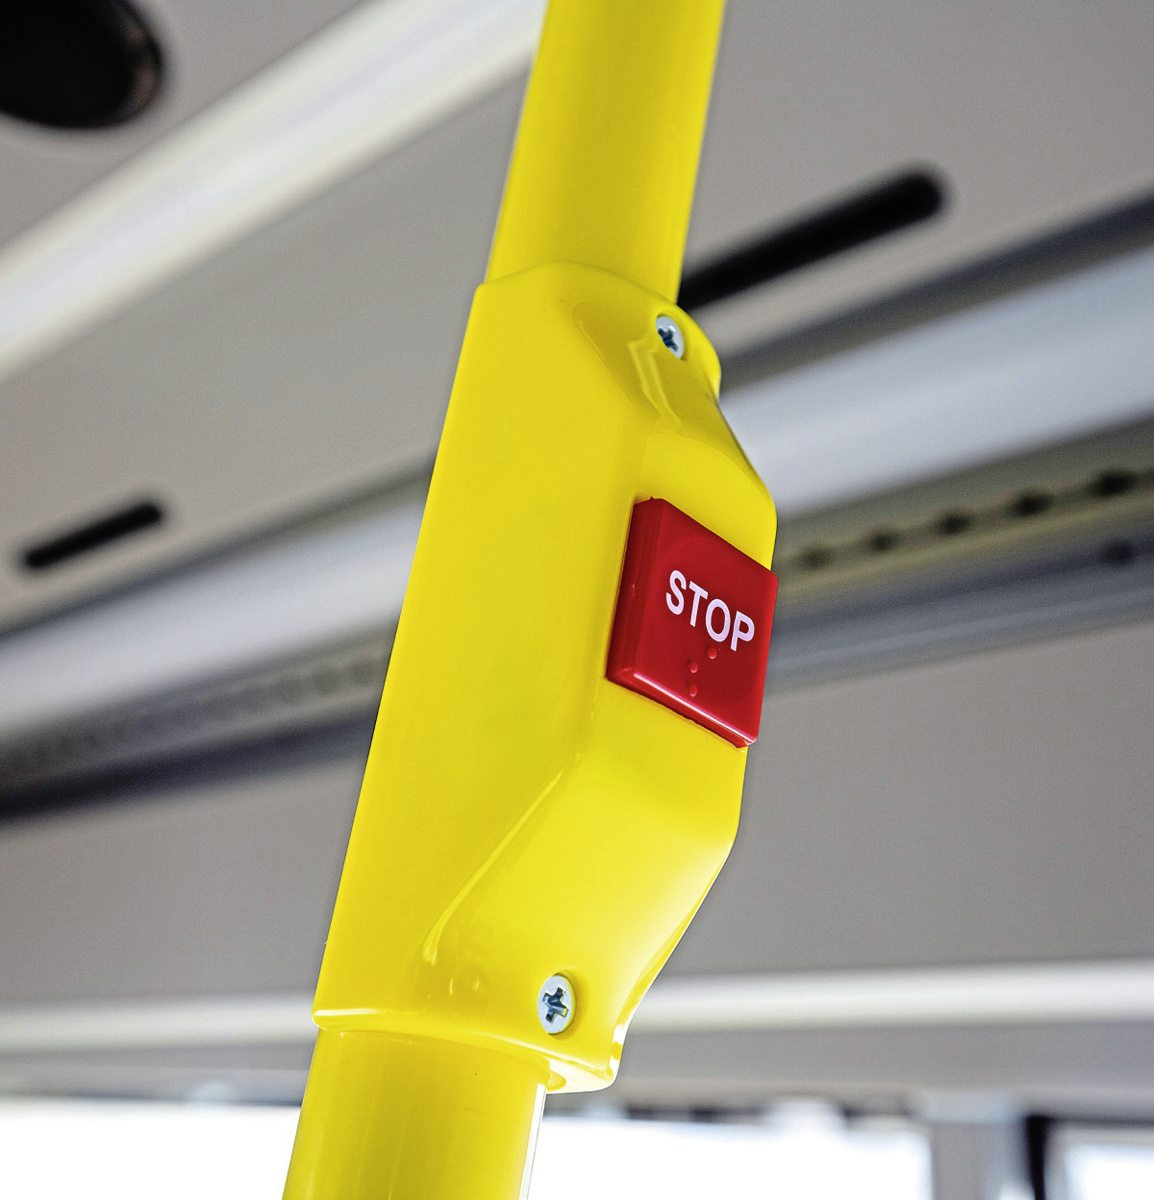 Features can be added to make it appear more like a regular service bus rather than a minibus